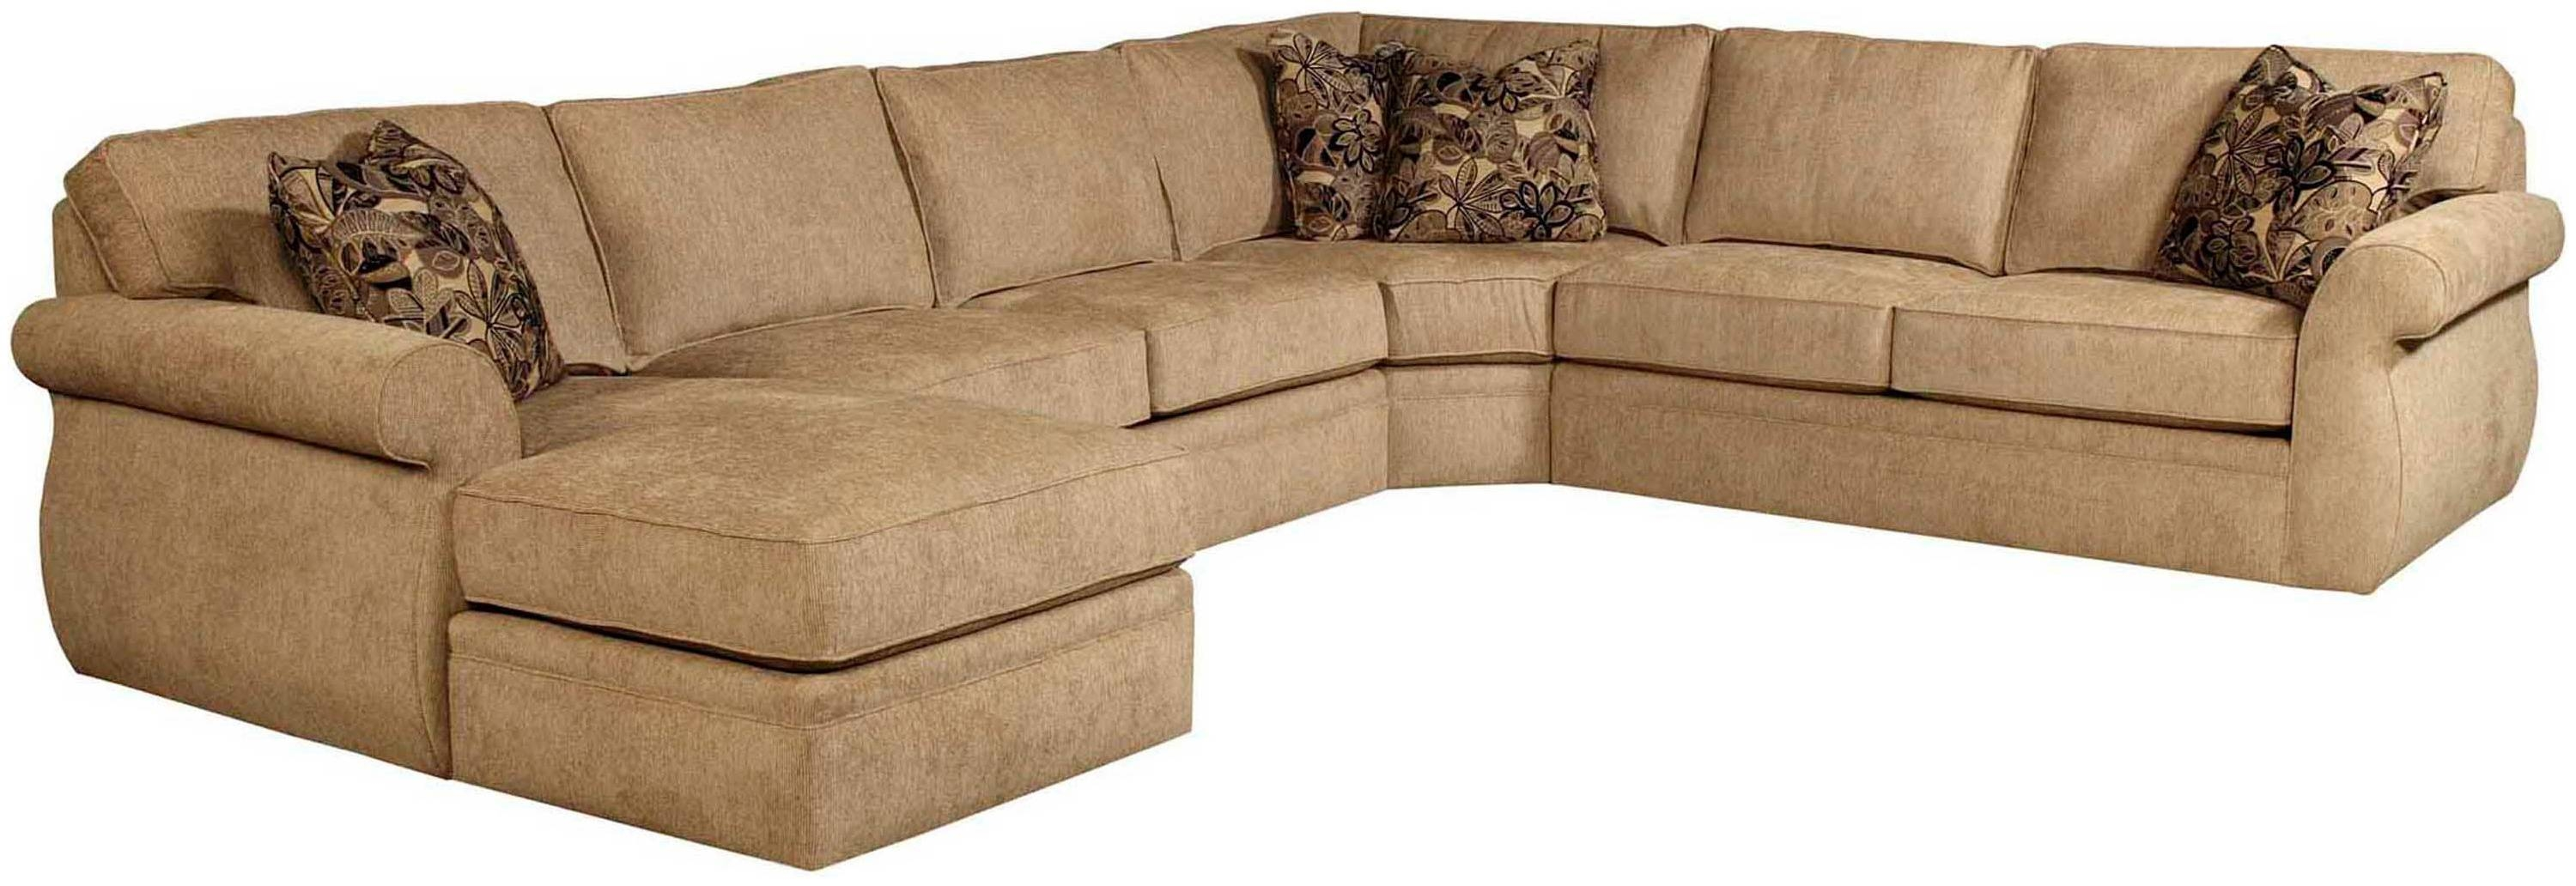 Broyhill Veronica 4Pc Chaise Sectional intended for Broyhill Sectional Sofas (Image 19 of 30)